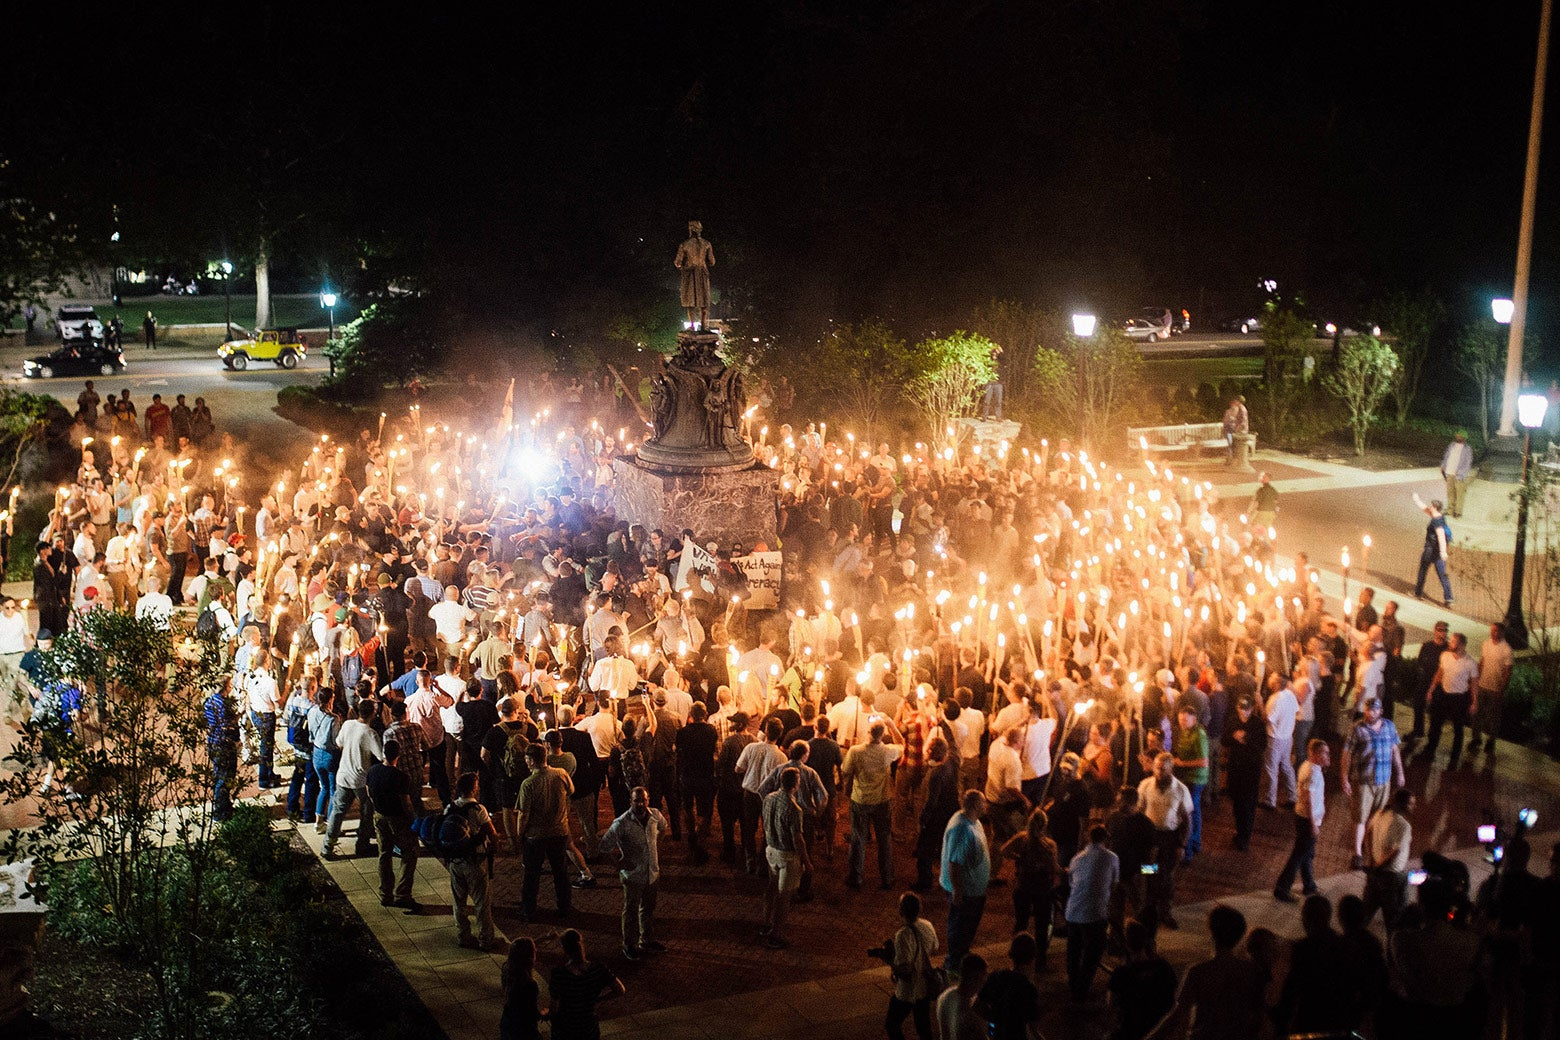 White supremacists  with torches encircle counter-protestors at the base of a statue of Thomas Jefferson